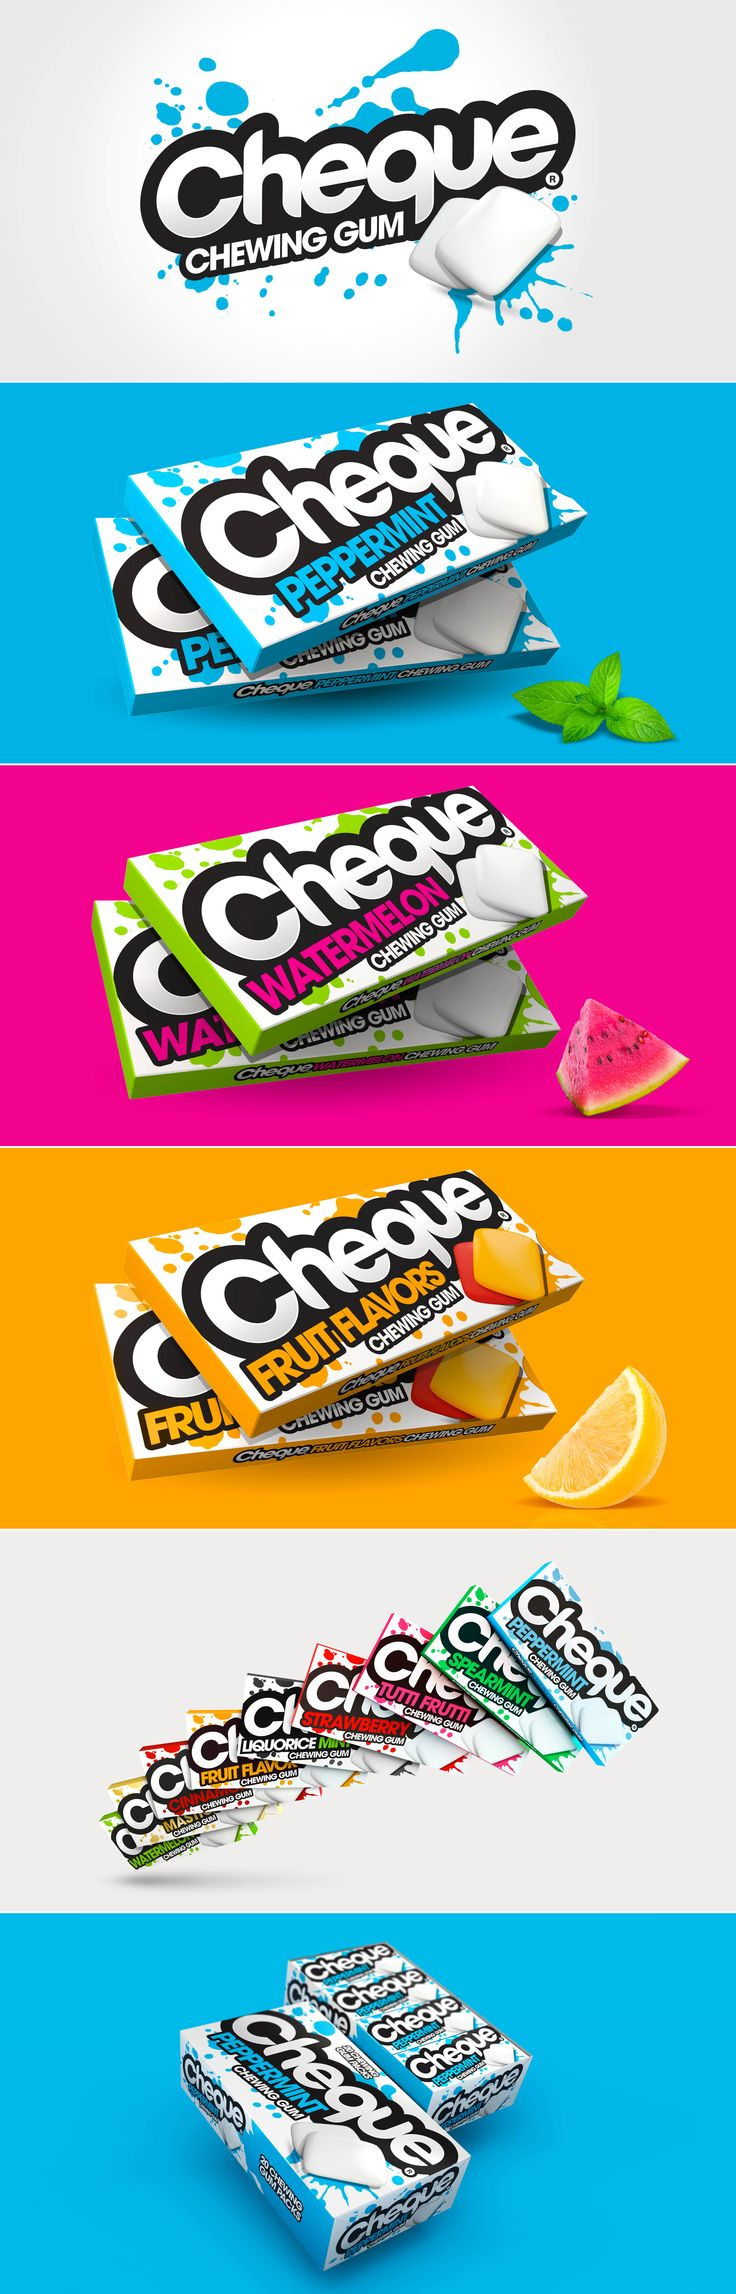 Cheque Chewing Gum Packaging designed by Design Happy, a strategic packaging & branding design agency based in Kingston Upon Thames, UK. http://www.designhappy.co.uk